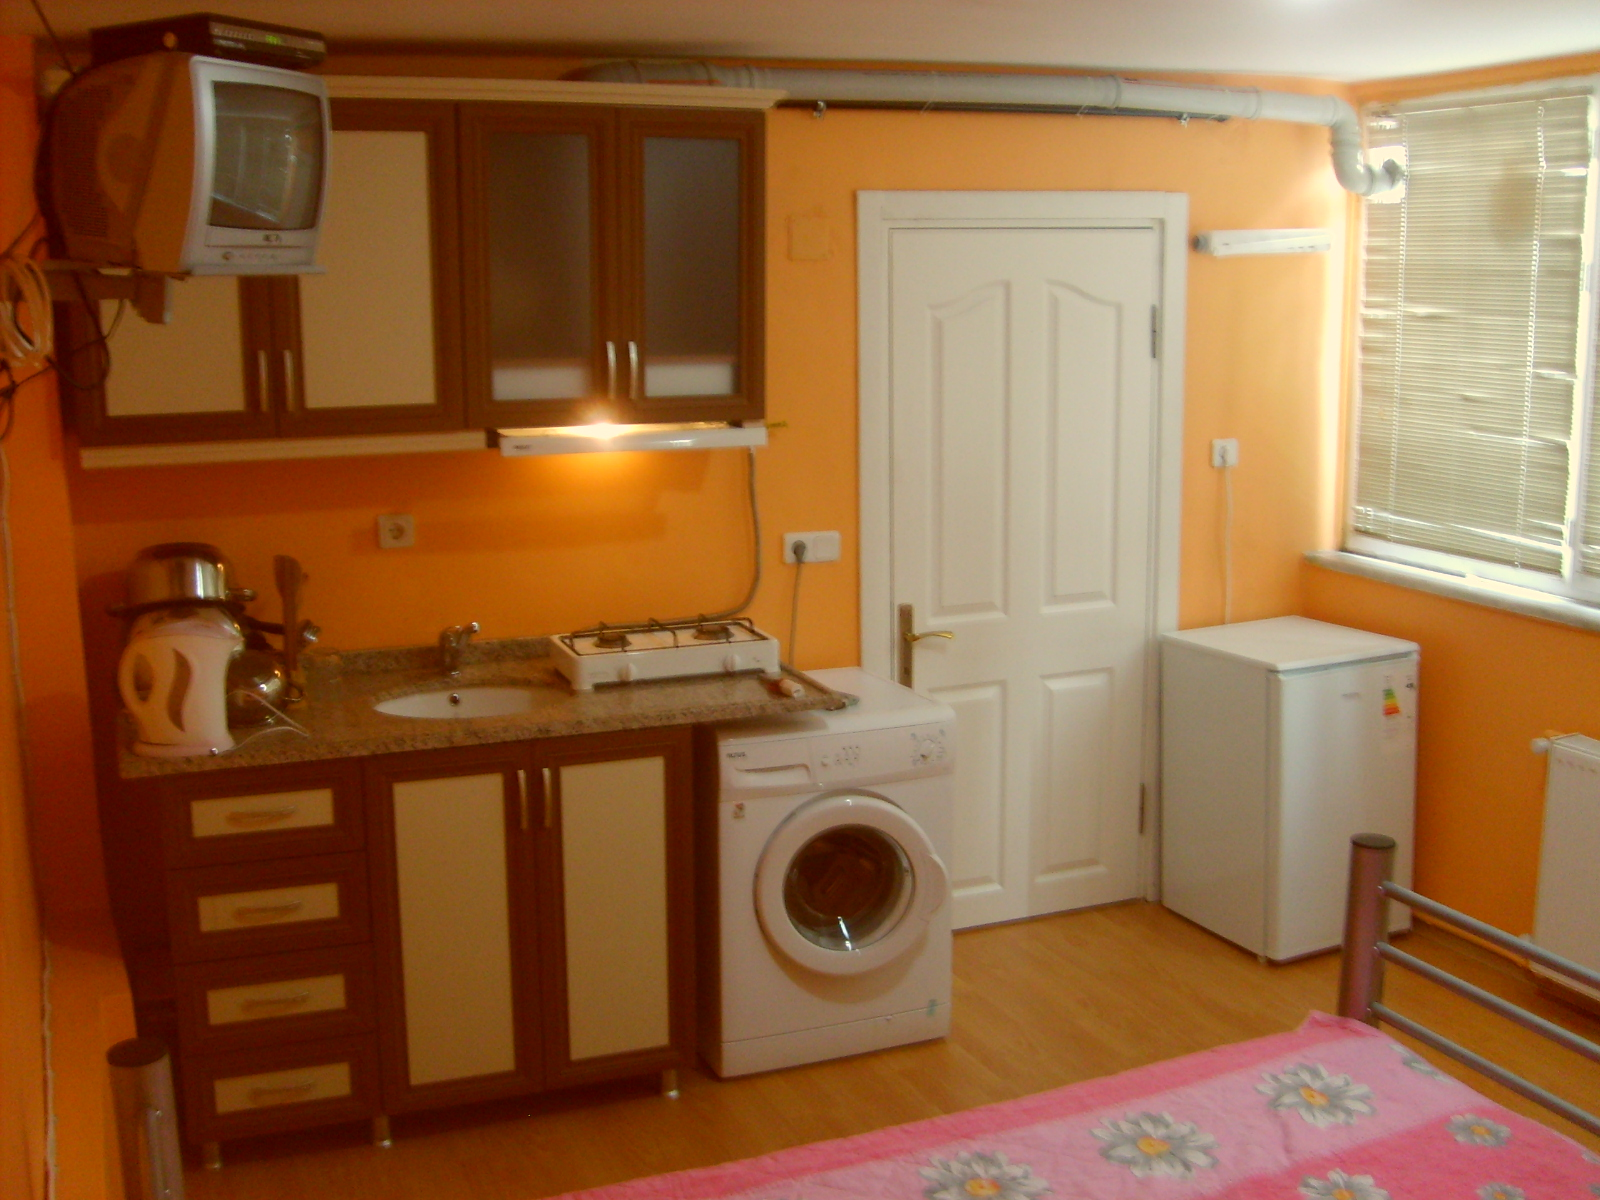 Istanbul apartment rentals erasmus apartments erasmus for Small room rental